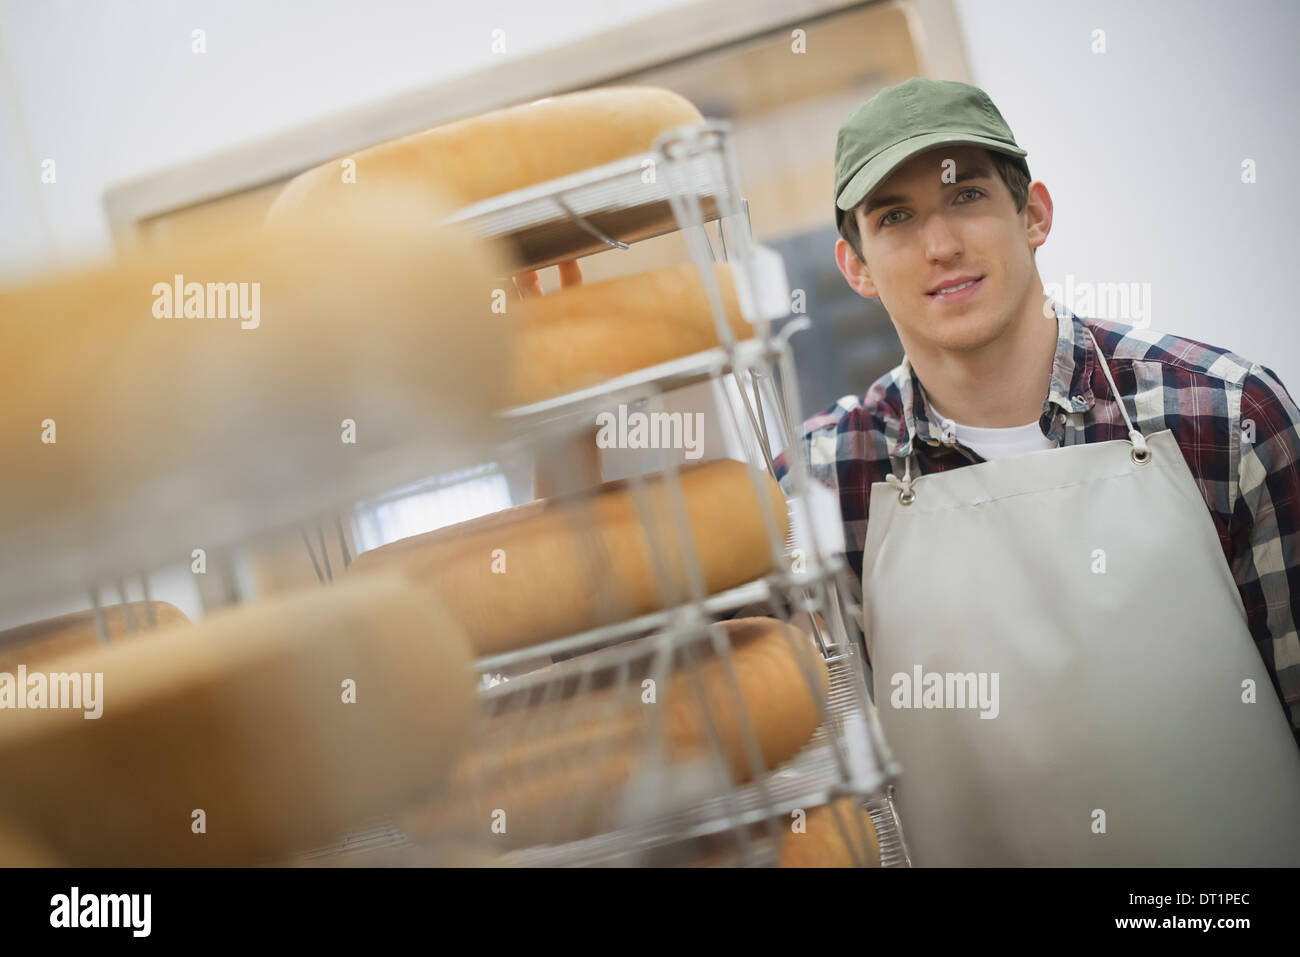 organic dairy farm with a mixed herd of cows and goats Dairy building with large wheels of cheese maturing Trays of produce - Stock Image